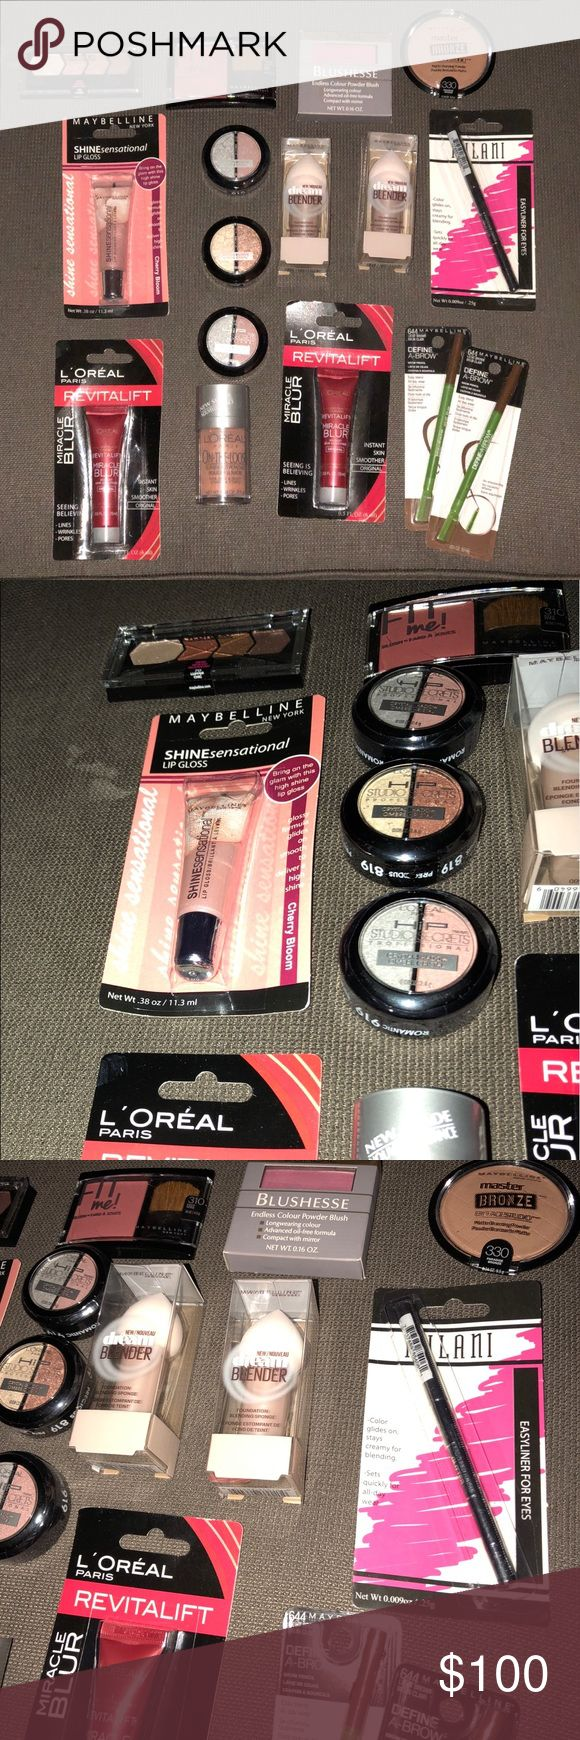 BRAND NEW MAKEUP BUNDLE Everything is brand new!  Retails for around $110+tax..   Includes:  2 Maybelline define a brow in light brown Maybelline lip gloss in cherry bloom  L'Oréal skin smoother  L'Oréal on the loose luminous powder in peach soleil  Maybelline dream blender Maybelline fit me blush in deep wine  Milani black eyeliner  Maybelline master bronze in paradise bronze  3 L'Oréal duo shadows  L'Oréal blush in cherie  Maybelline eyeshadow quad in copper chic ulta Makeup